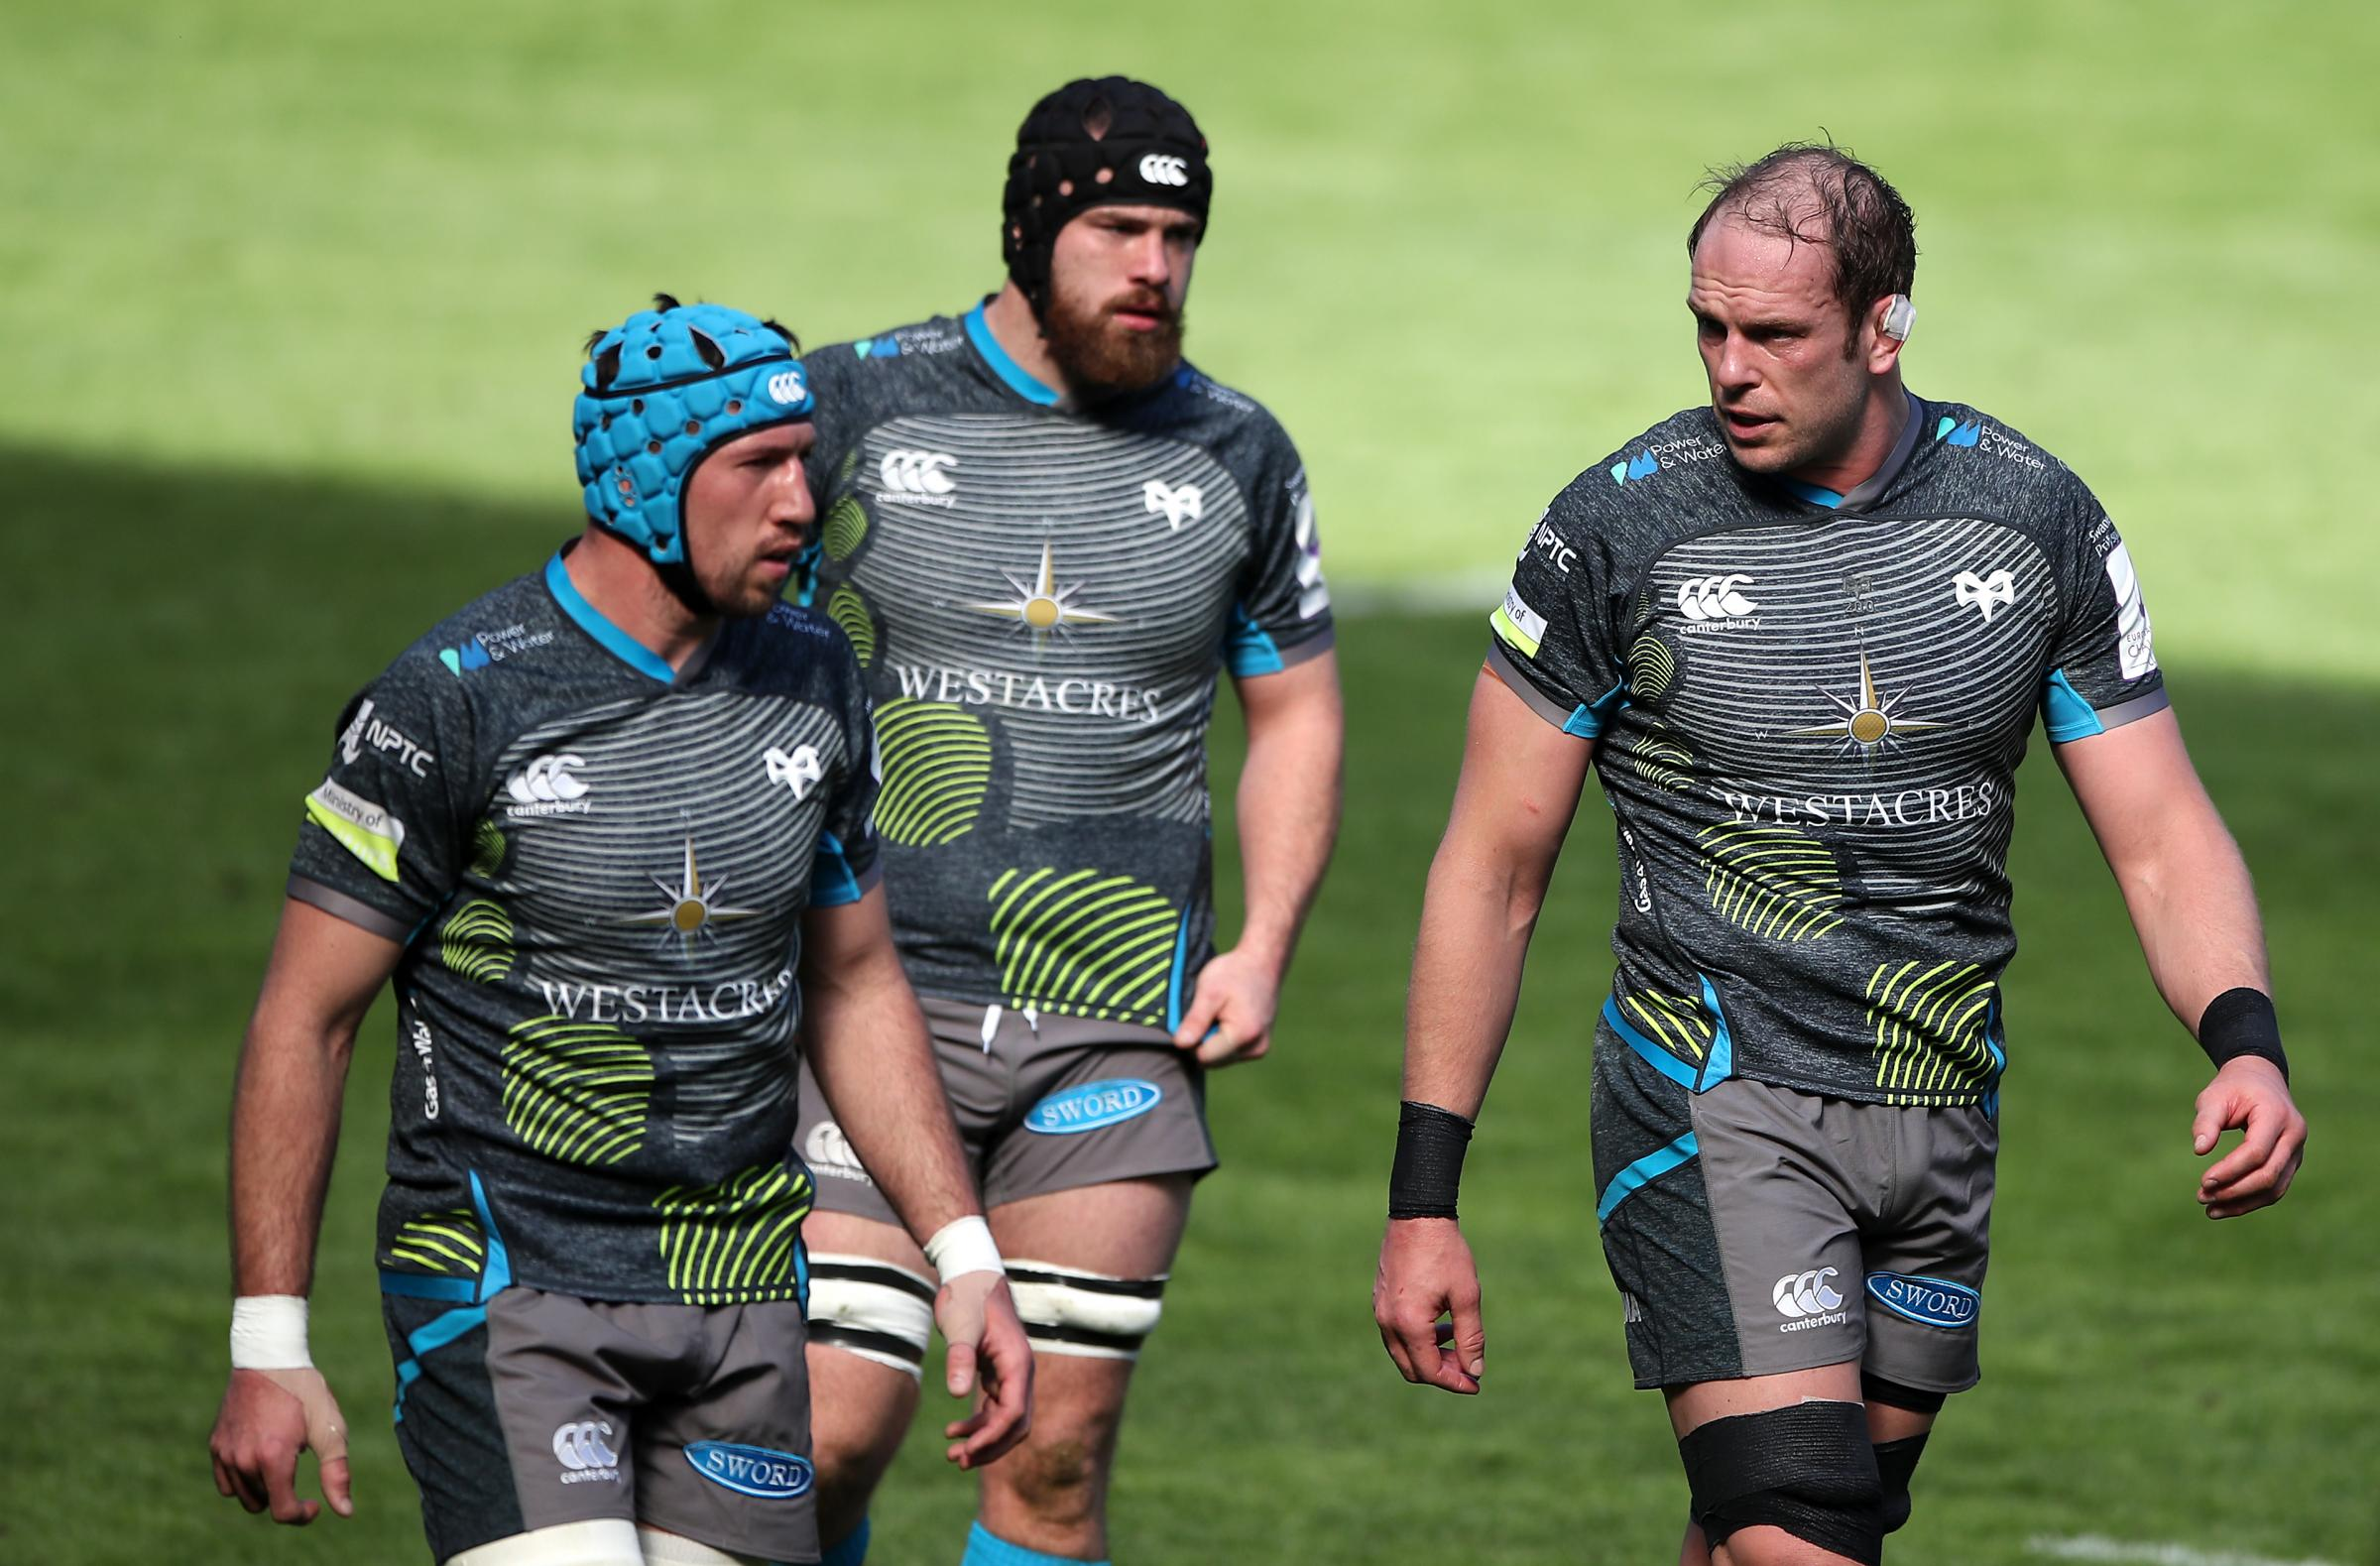 Ospreys Alun Wyn Jones (right) speaks with Justin Tipuric during the Heineken Challenge Cup match at Liberty Stadium, Swansea. Picture date: Saturday April 3, 2021.